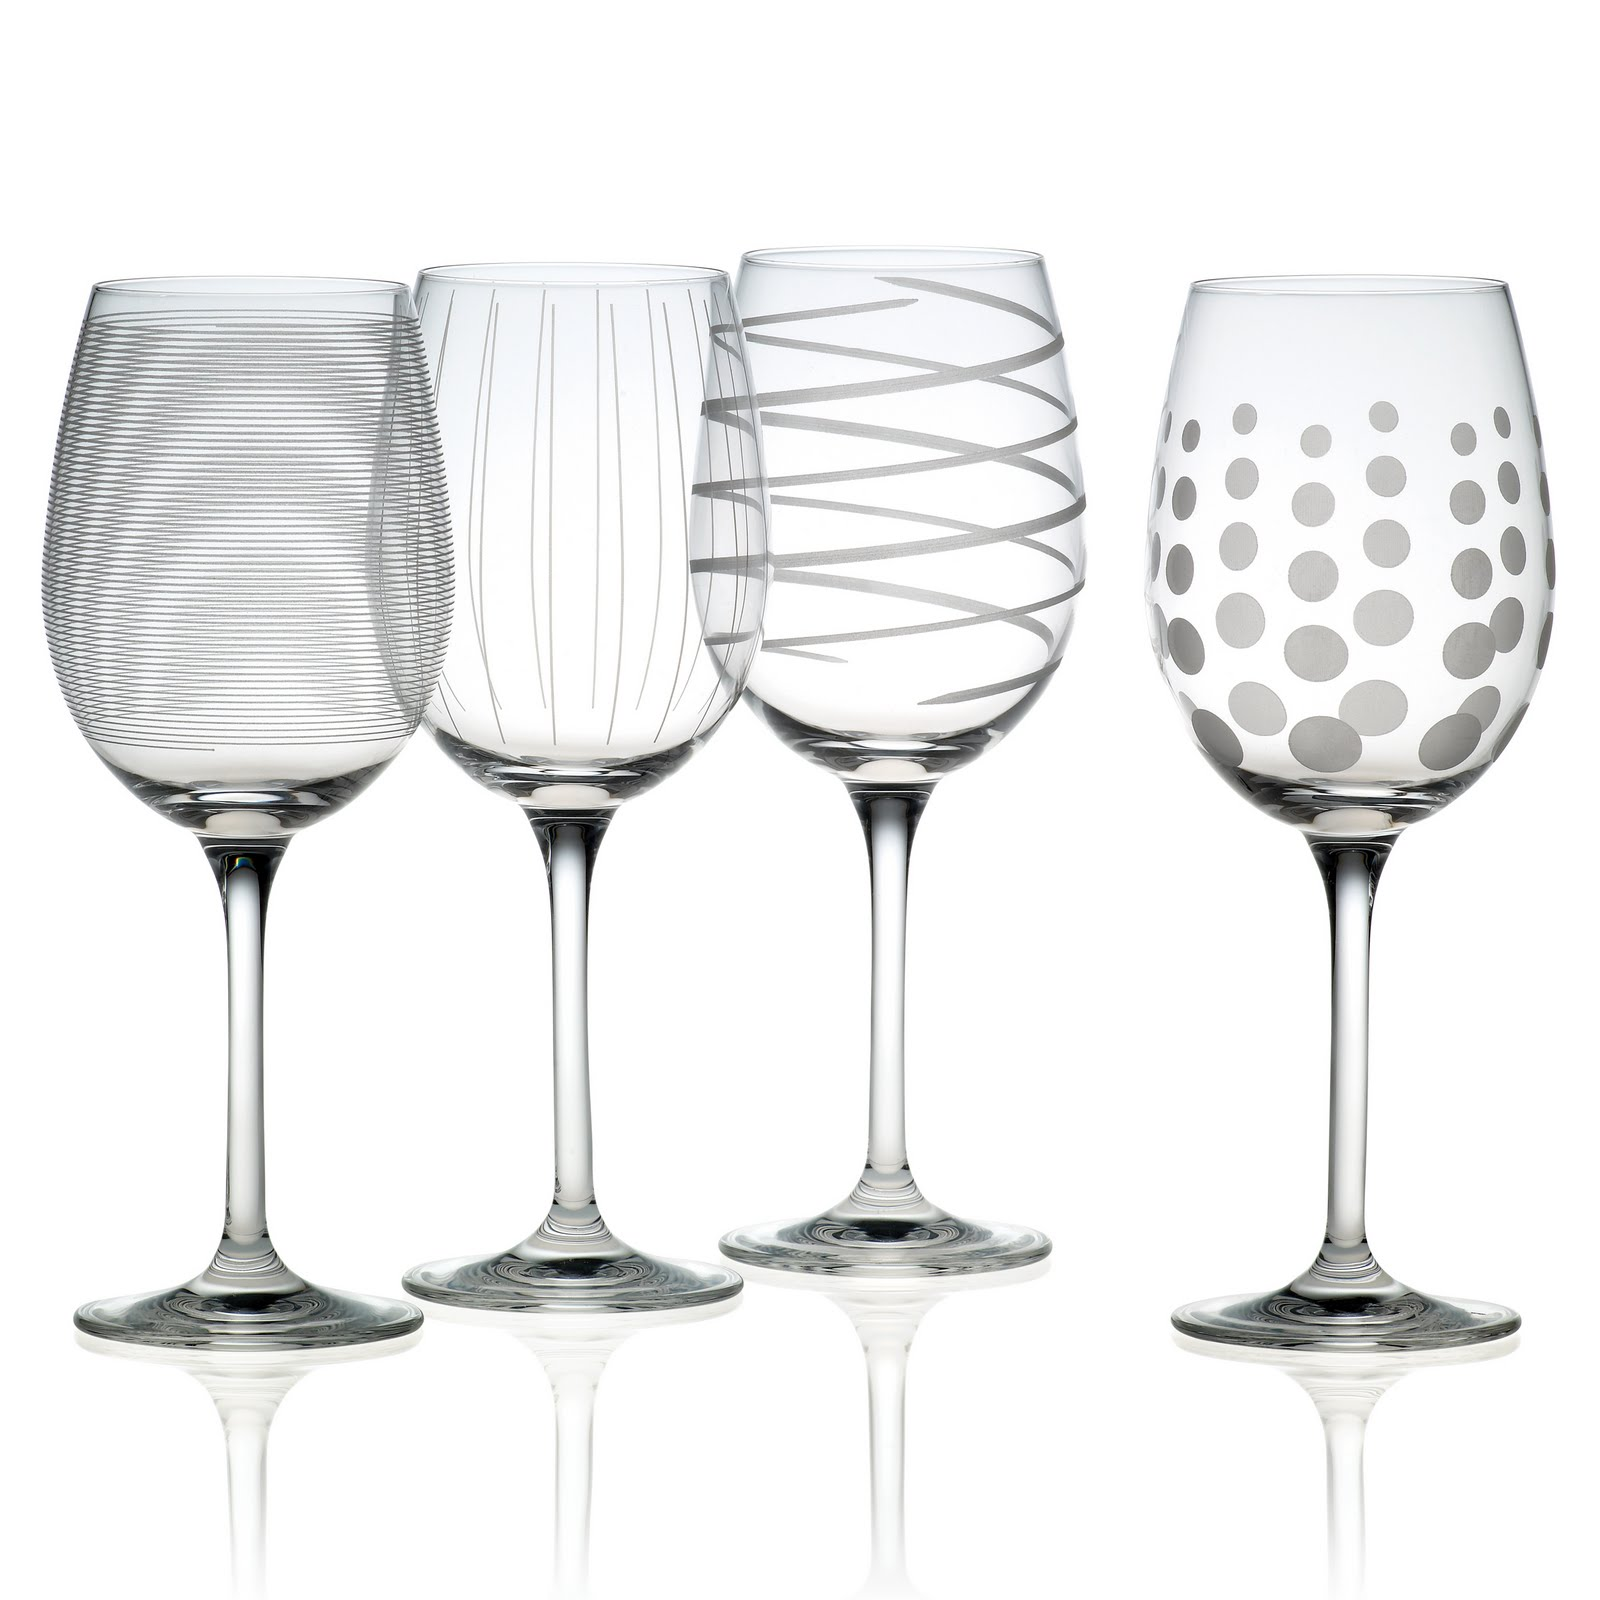 Beautiful Mikasa Wine Glasses for Stemware or Serveware: Admirable Mikasa Wine Glasses 4 Pcs